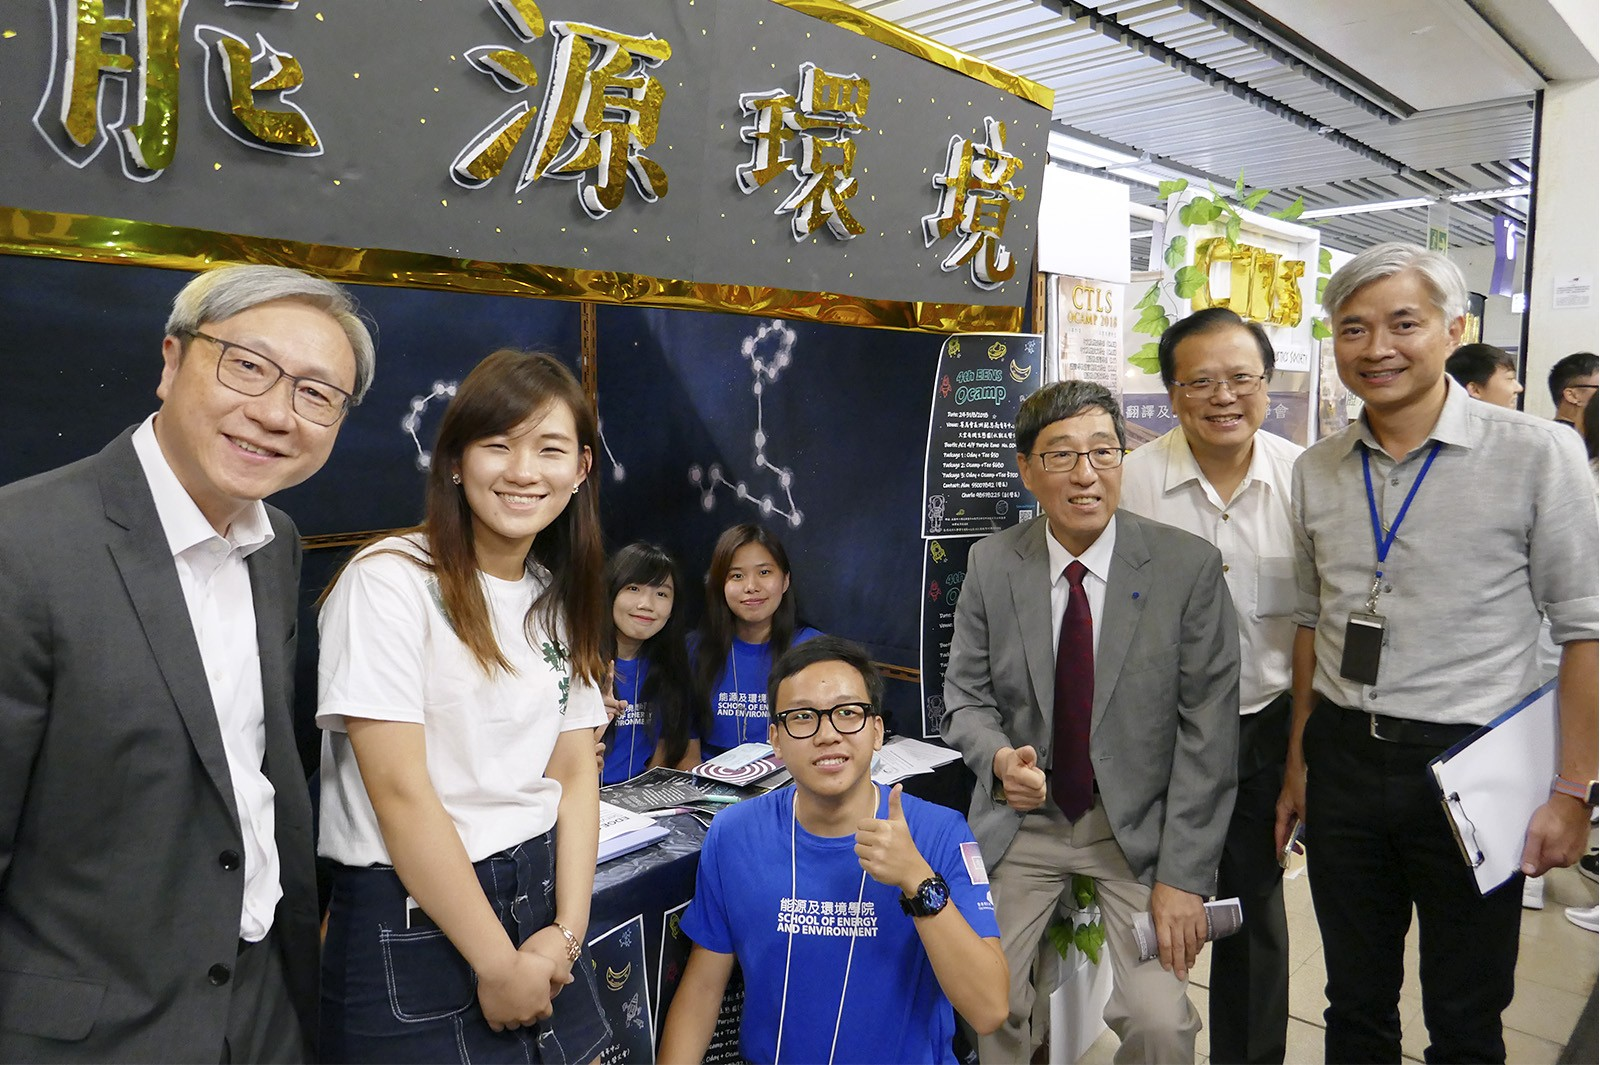 President Kuo (third from right), Professor Ip (far left), Dr Kwok (far right) and Dr Wong (second from right) visit the stalls of the SU clubs and societies.